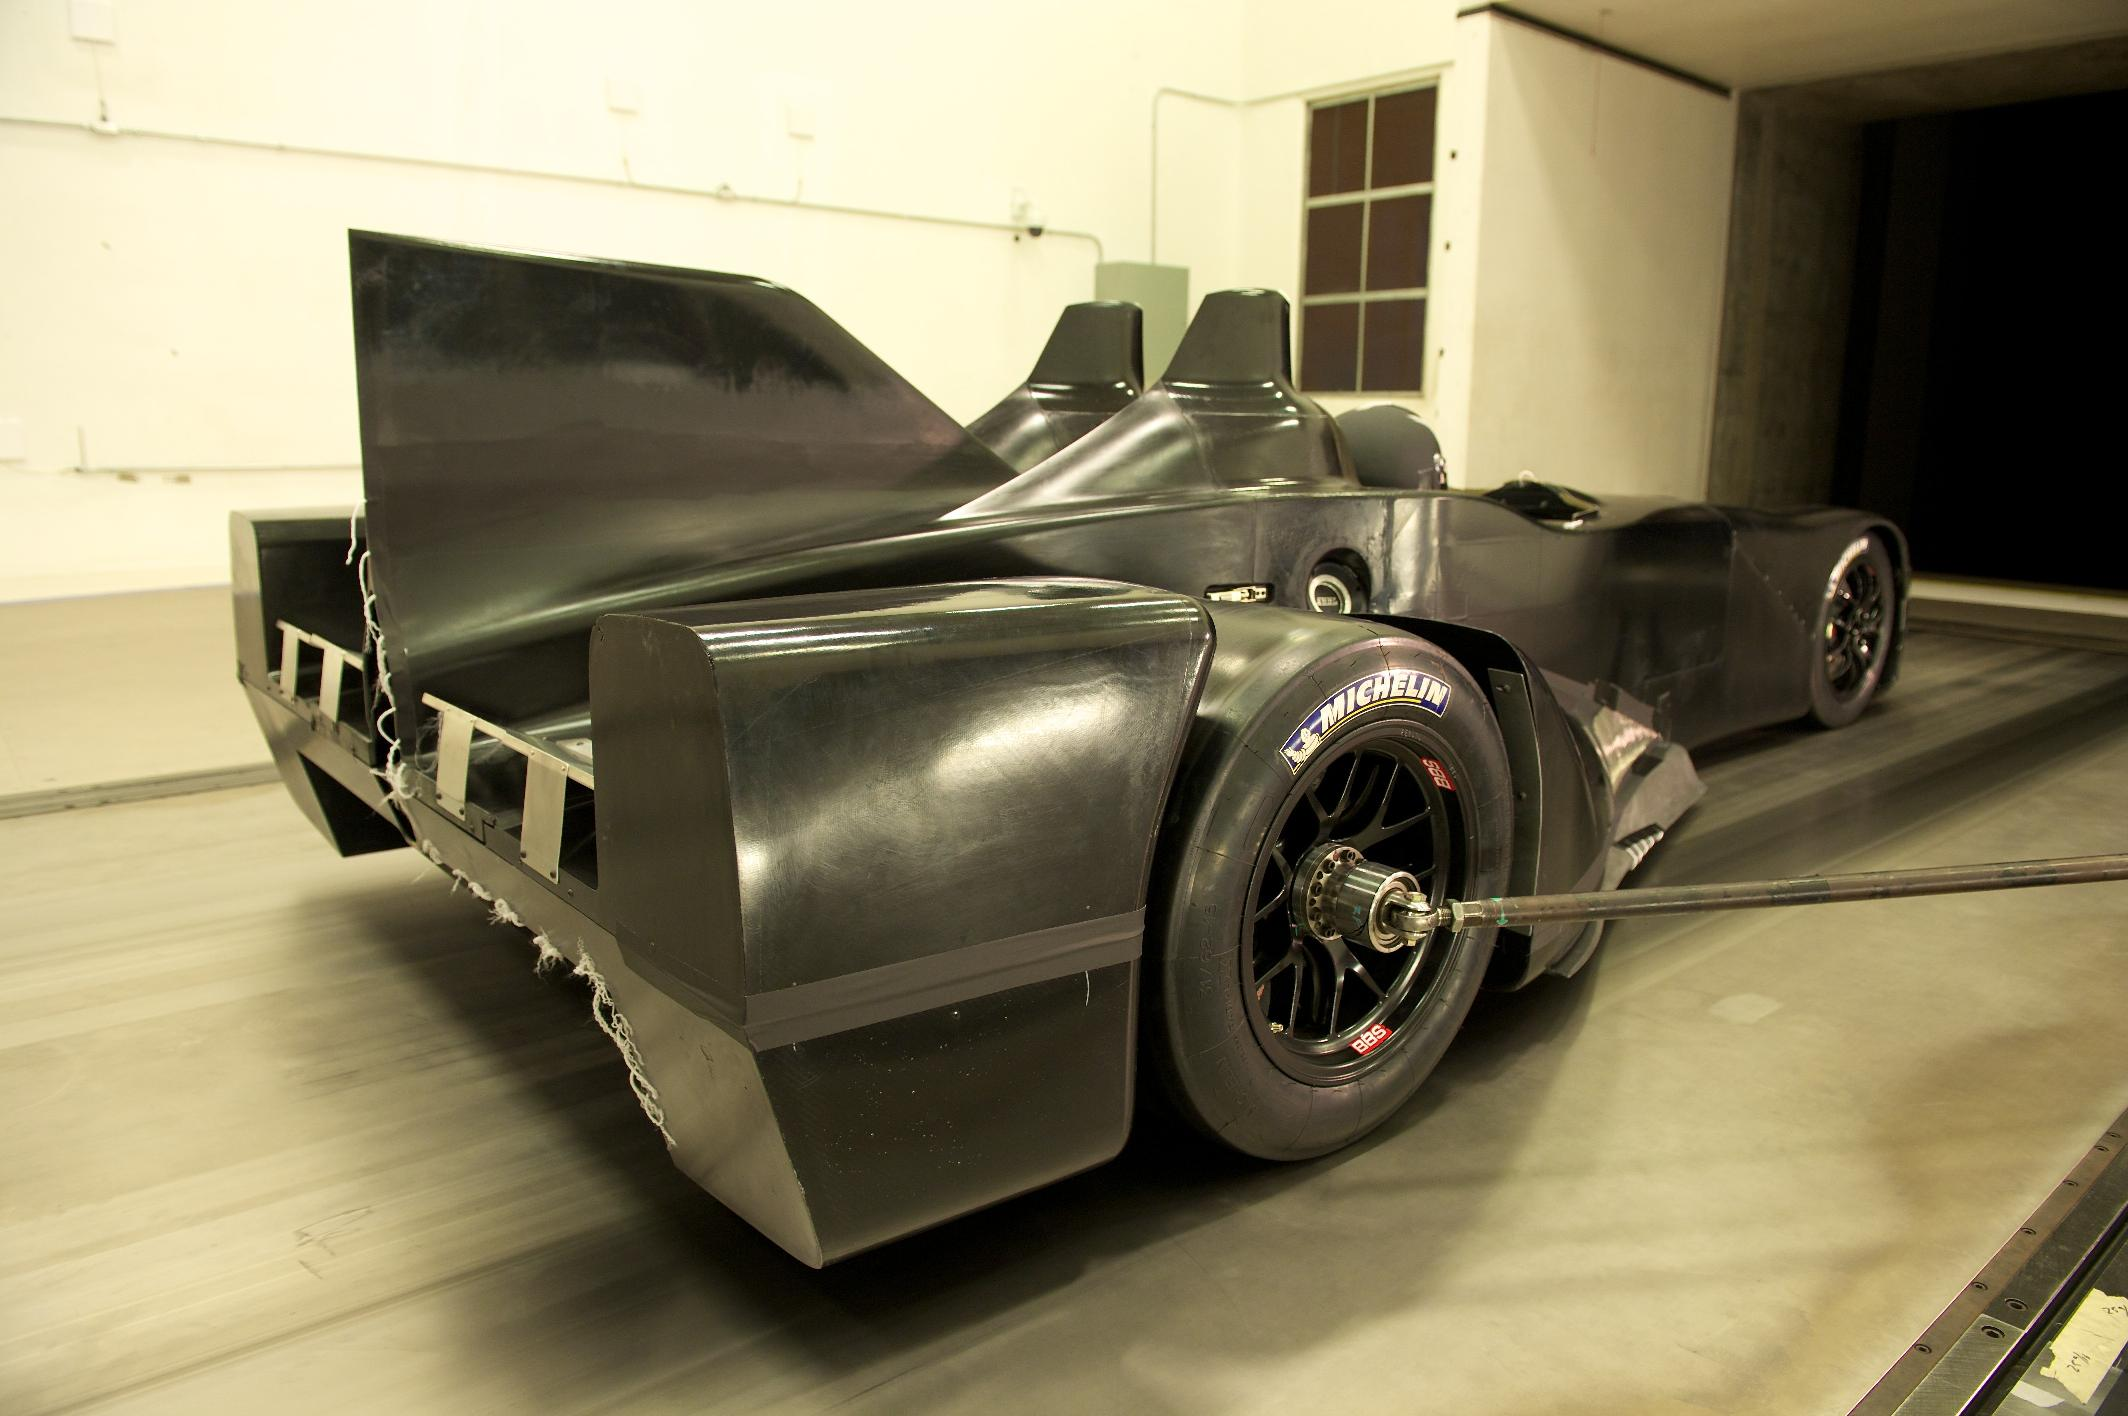 Nissan DeltaWing Batmobile Wind Tunnel